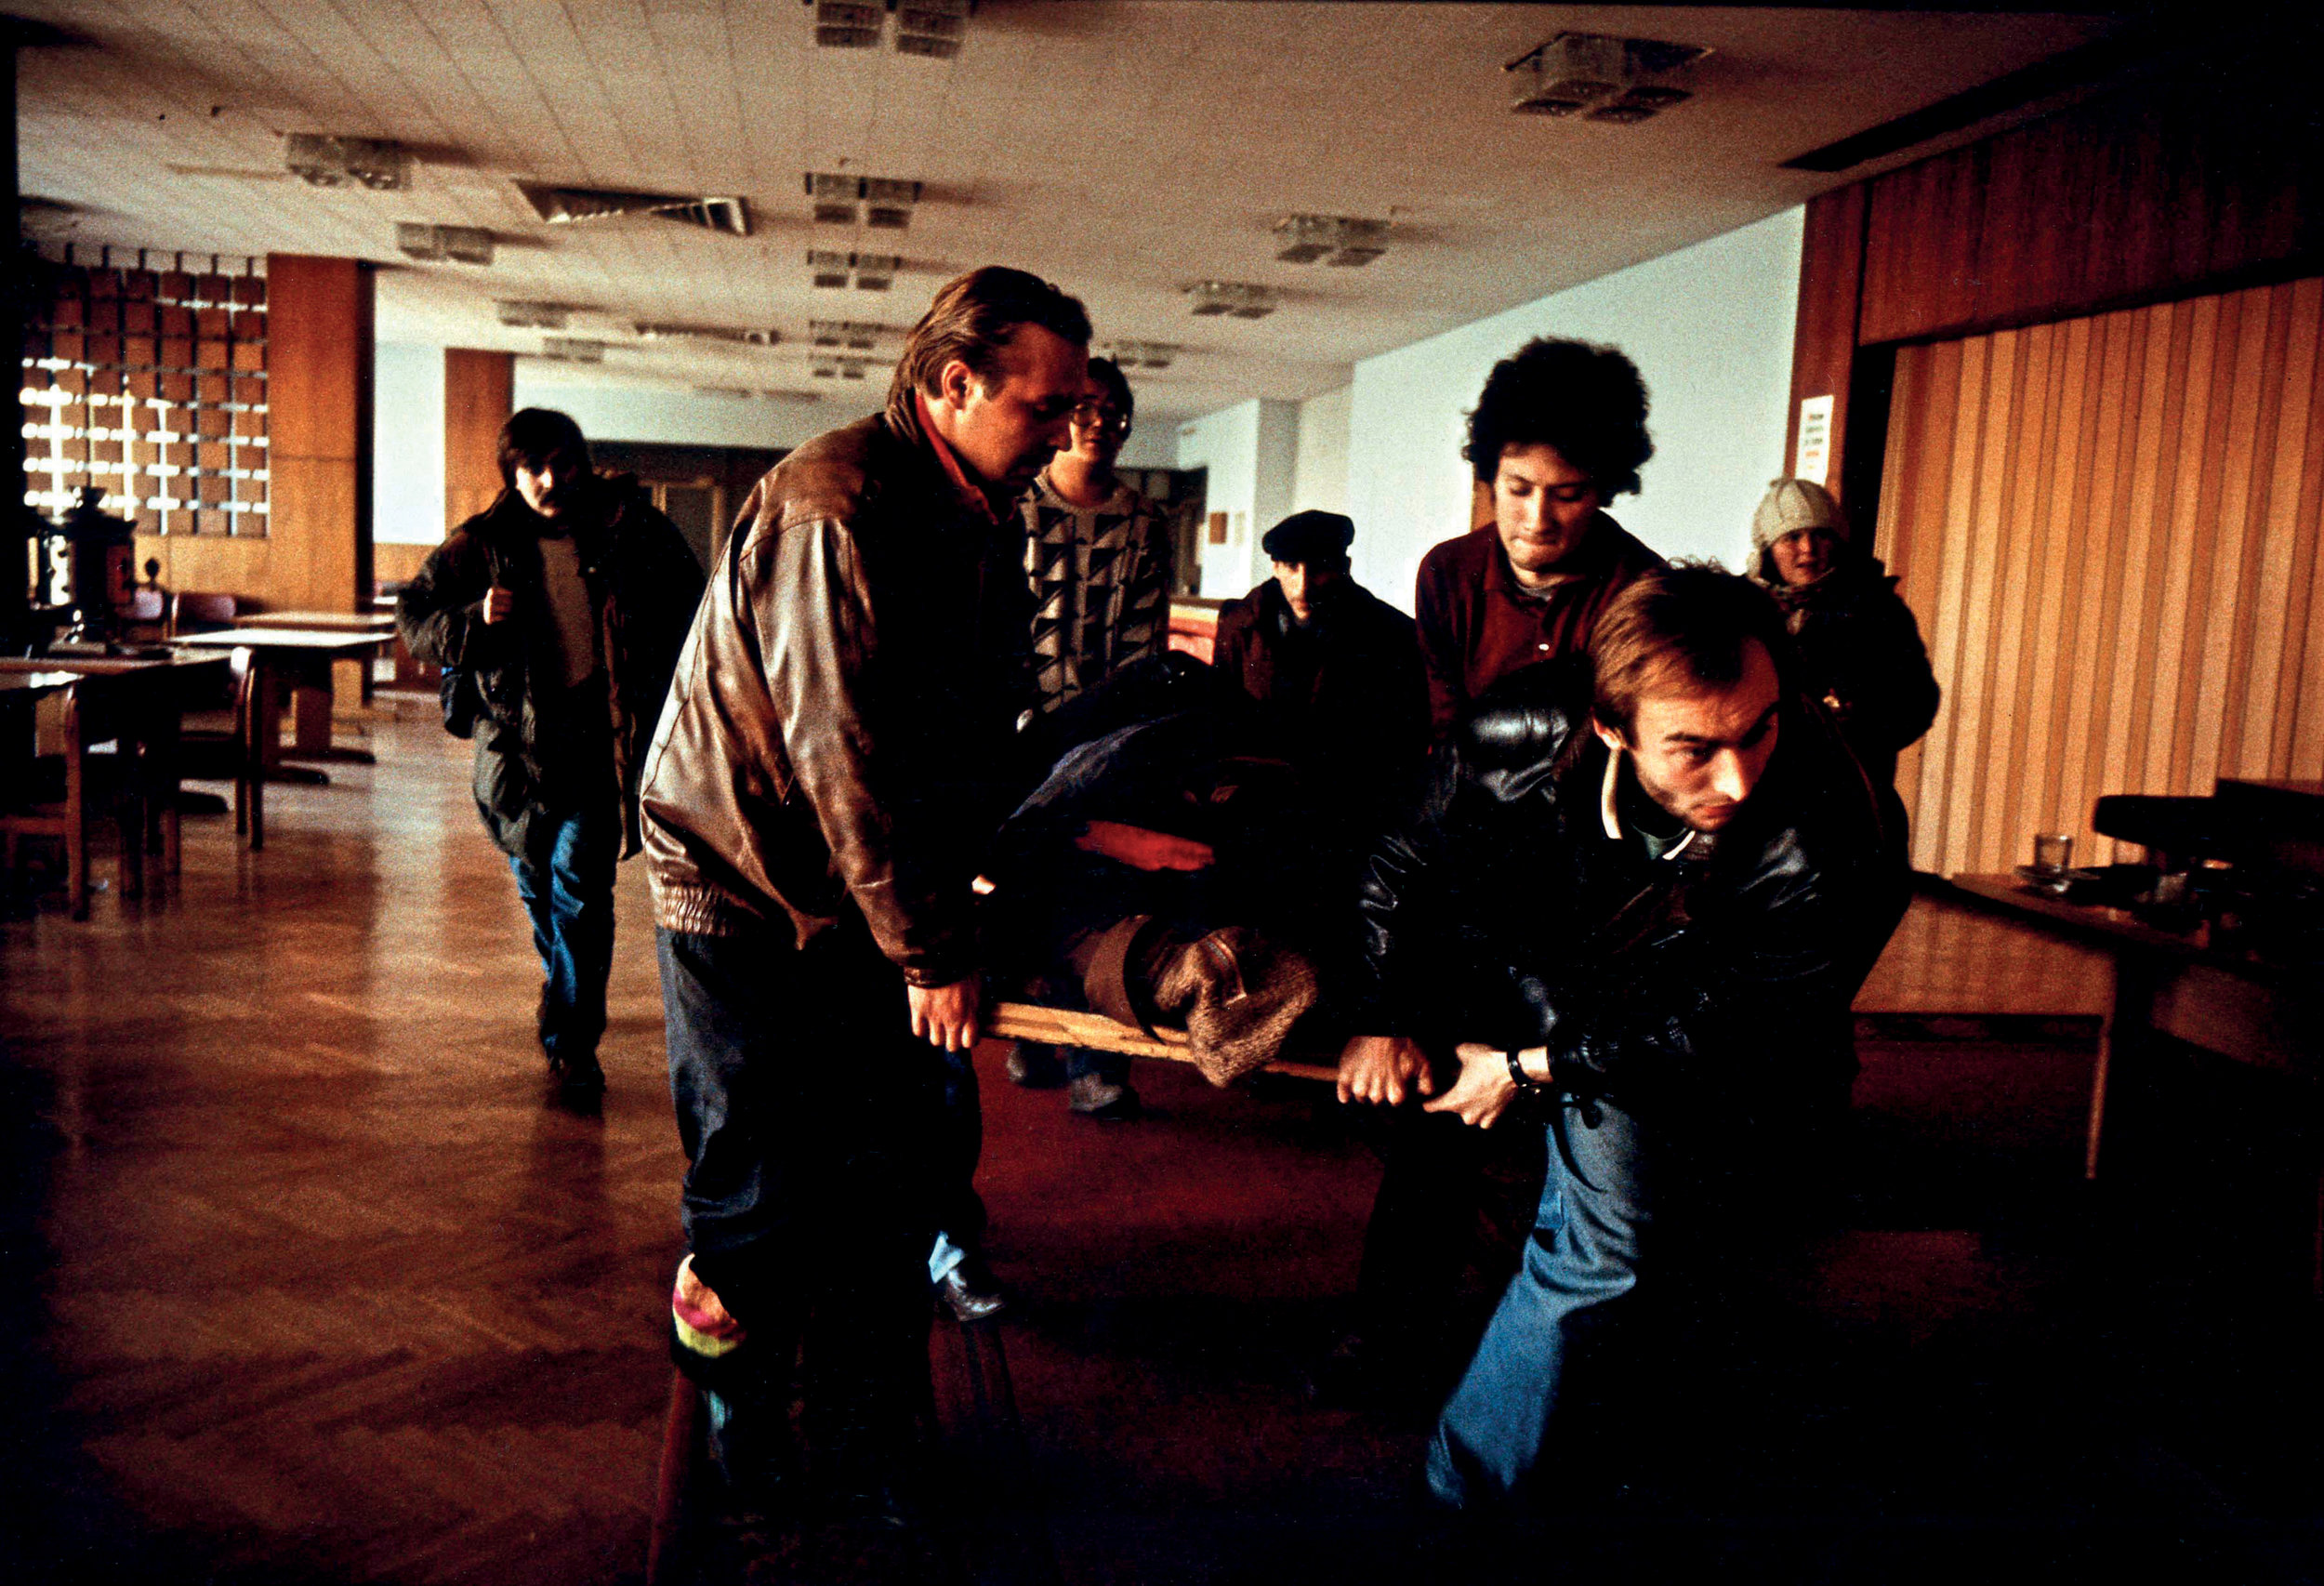 Russia, Moscow, 1993, People carrying an injured person on stretcher. Hundreds of rebels were herded out of the devastated building by troops as Yeltsin and the world breathed a sigh of relief. But scores of others left under white sheets. The official Kremlin death toll for the two days of fighting was 142; all but 21 were civilians.